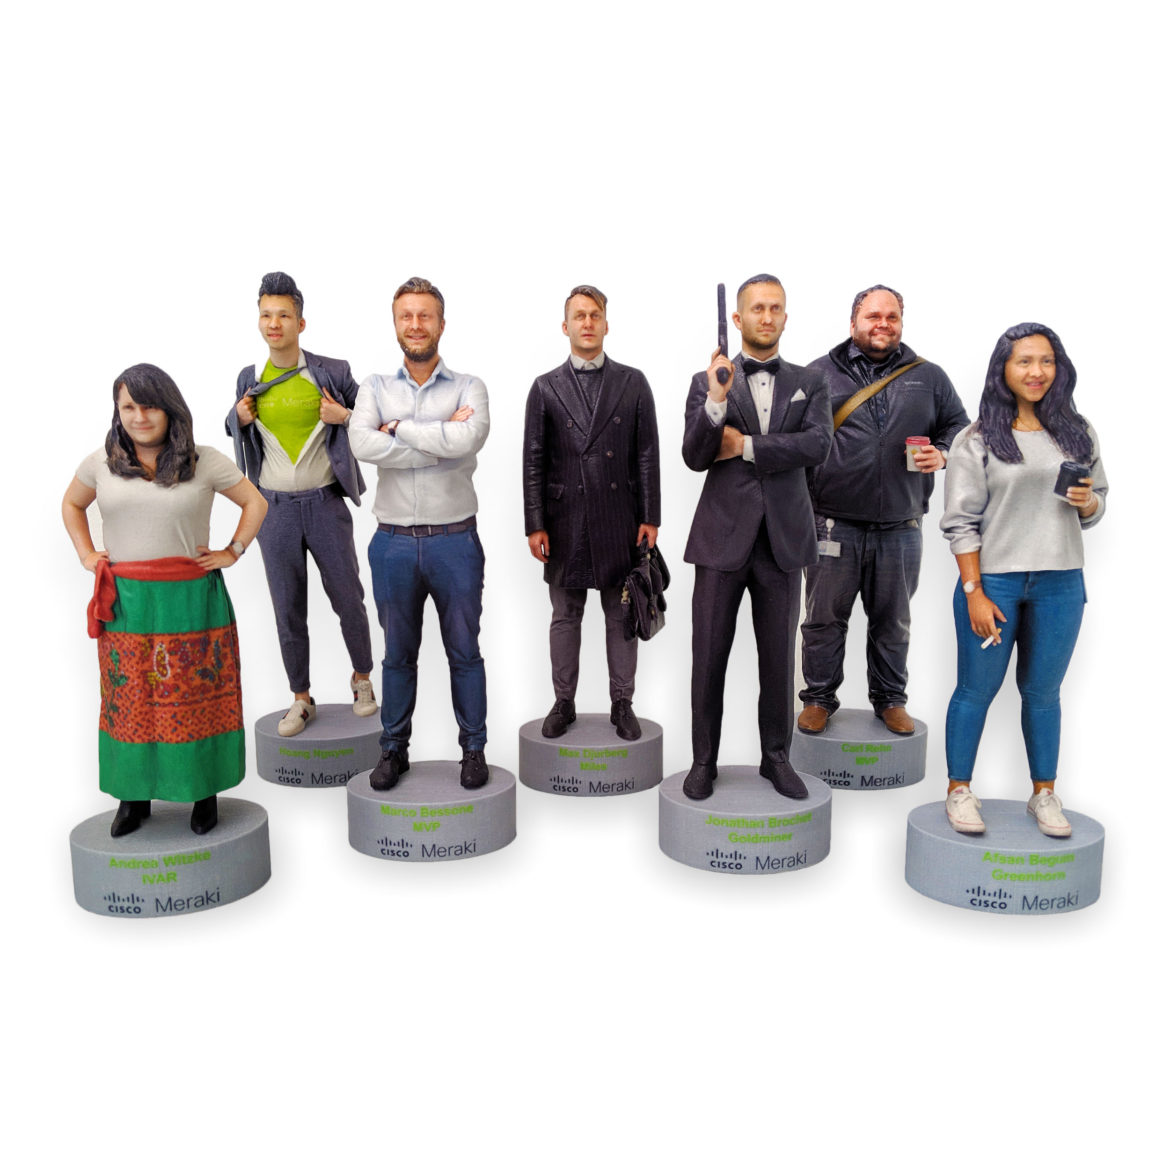 my3Dtwin, 3D Printed Event Figurines on a custom base meraki cisco